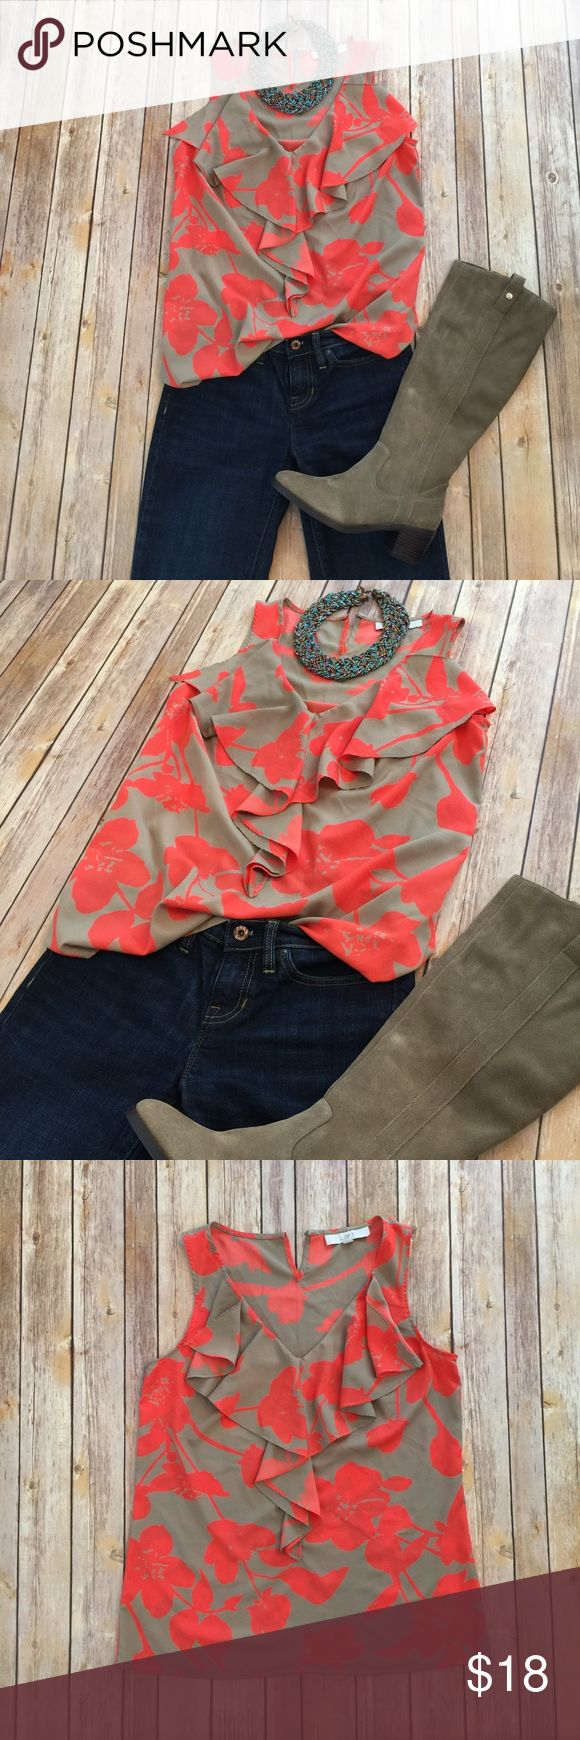 Ruffle V-veck Sleeveless Blouse Great top for fall with a cardigan or summer worn solo. Perfect length for the slouchy tuck in. This top is gently worn- see photo of missing button on back, nothing a needle and tread can't fix. The button is unnecessary as the neck has plenty of room.  Paired with Gap denim, light brown stacked heel riding boots, and a turquoise statement necklace. Ann Taylor Tops Blouses